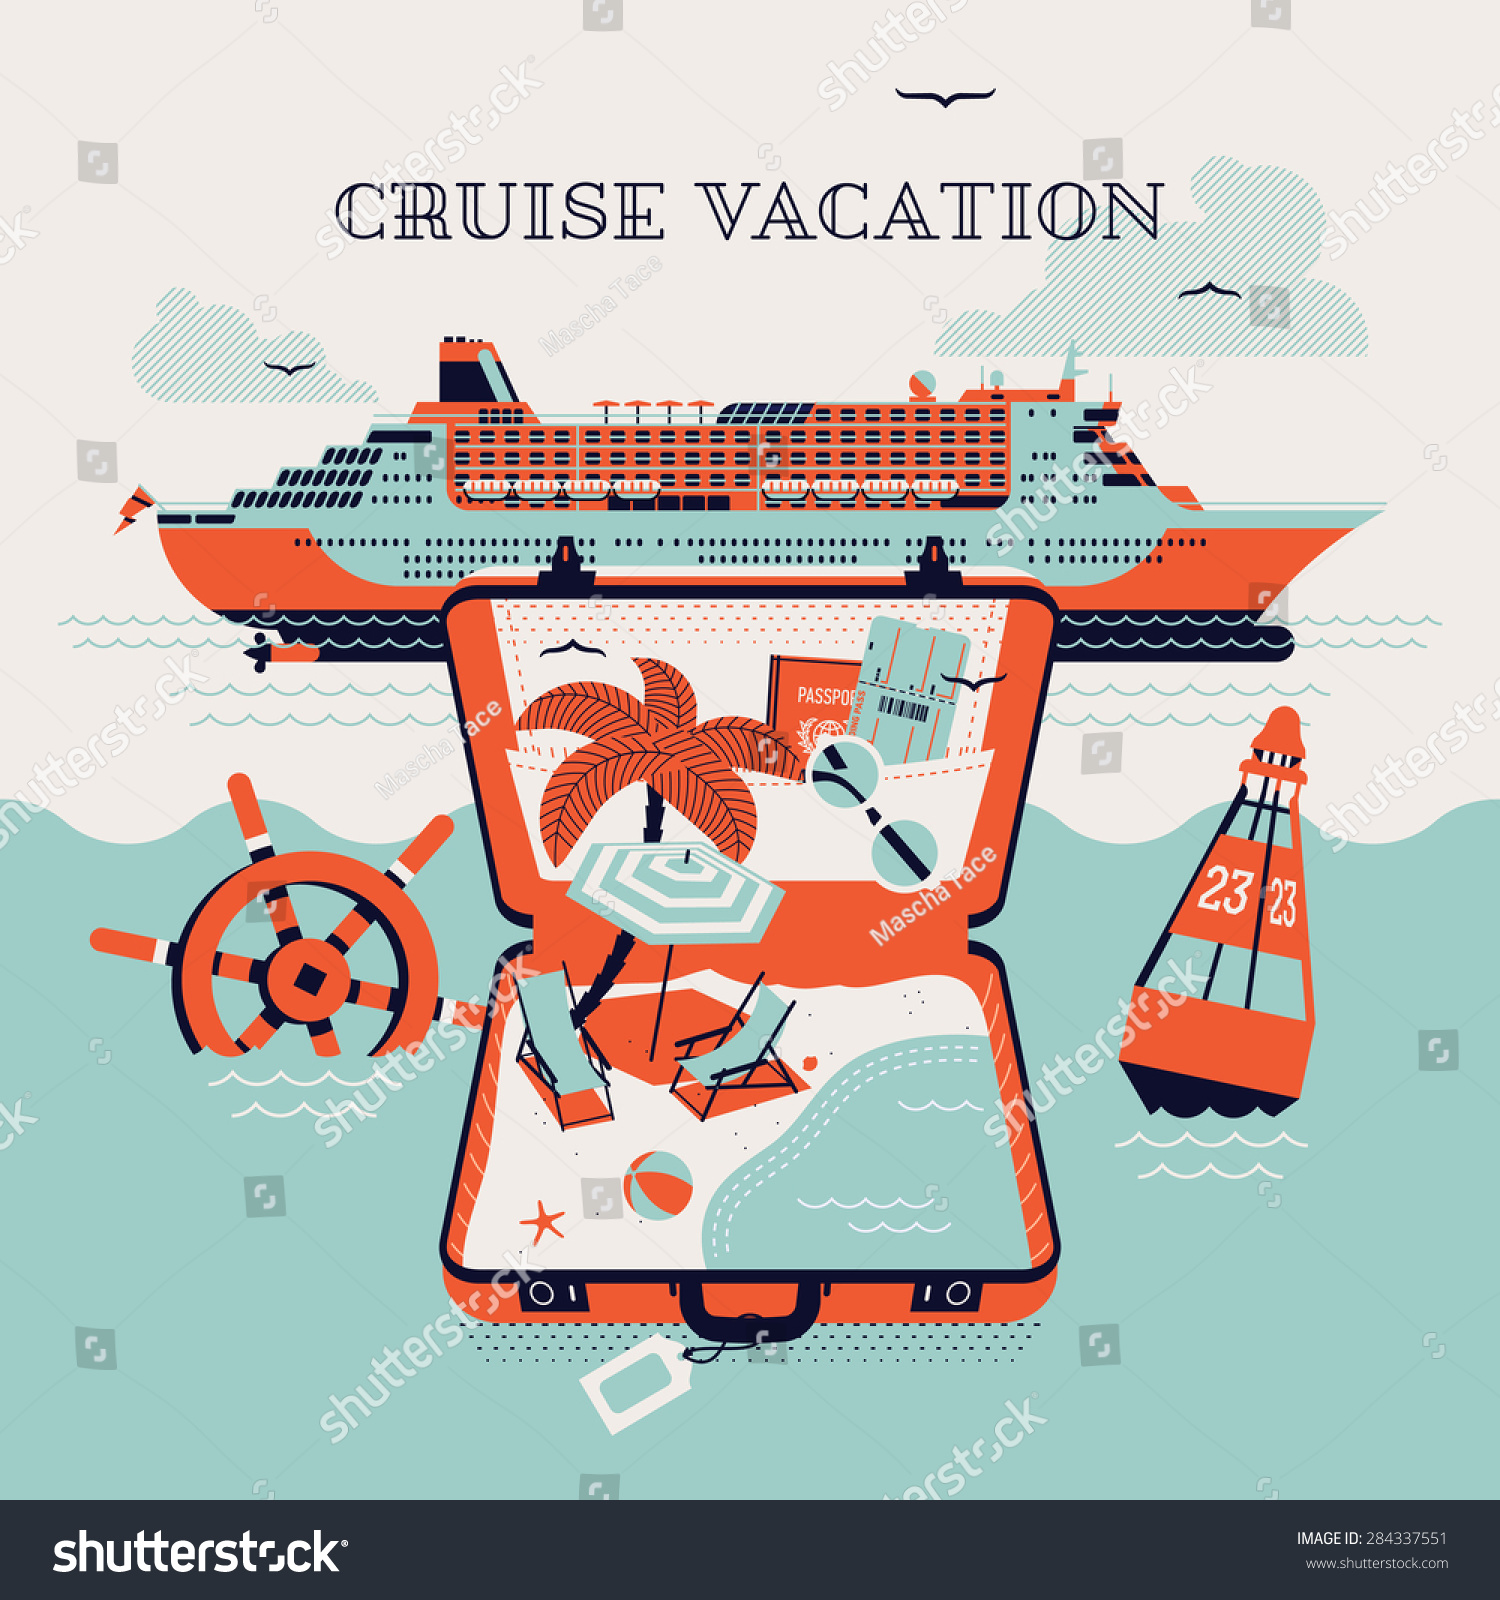 beautiful four colored cruise vacation printable stock vector 284337551 shutterstock. Black Bedroom Furniture Sets. Home Design Ideas